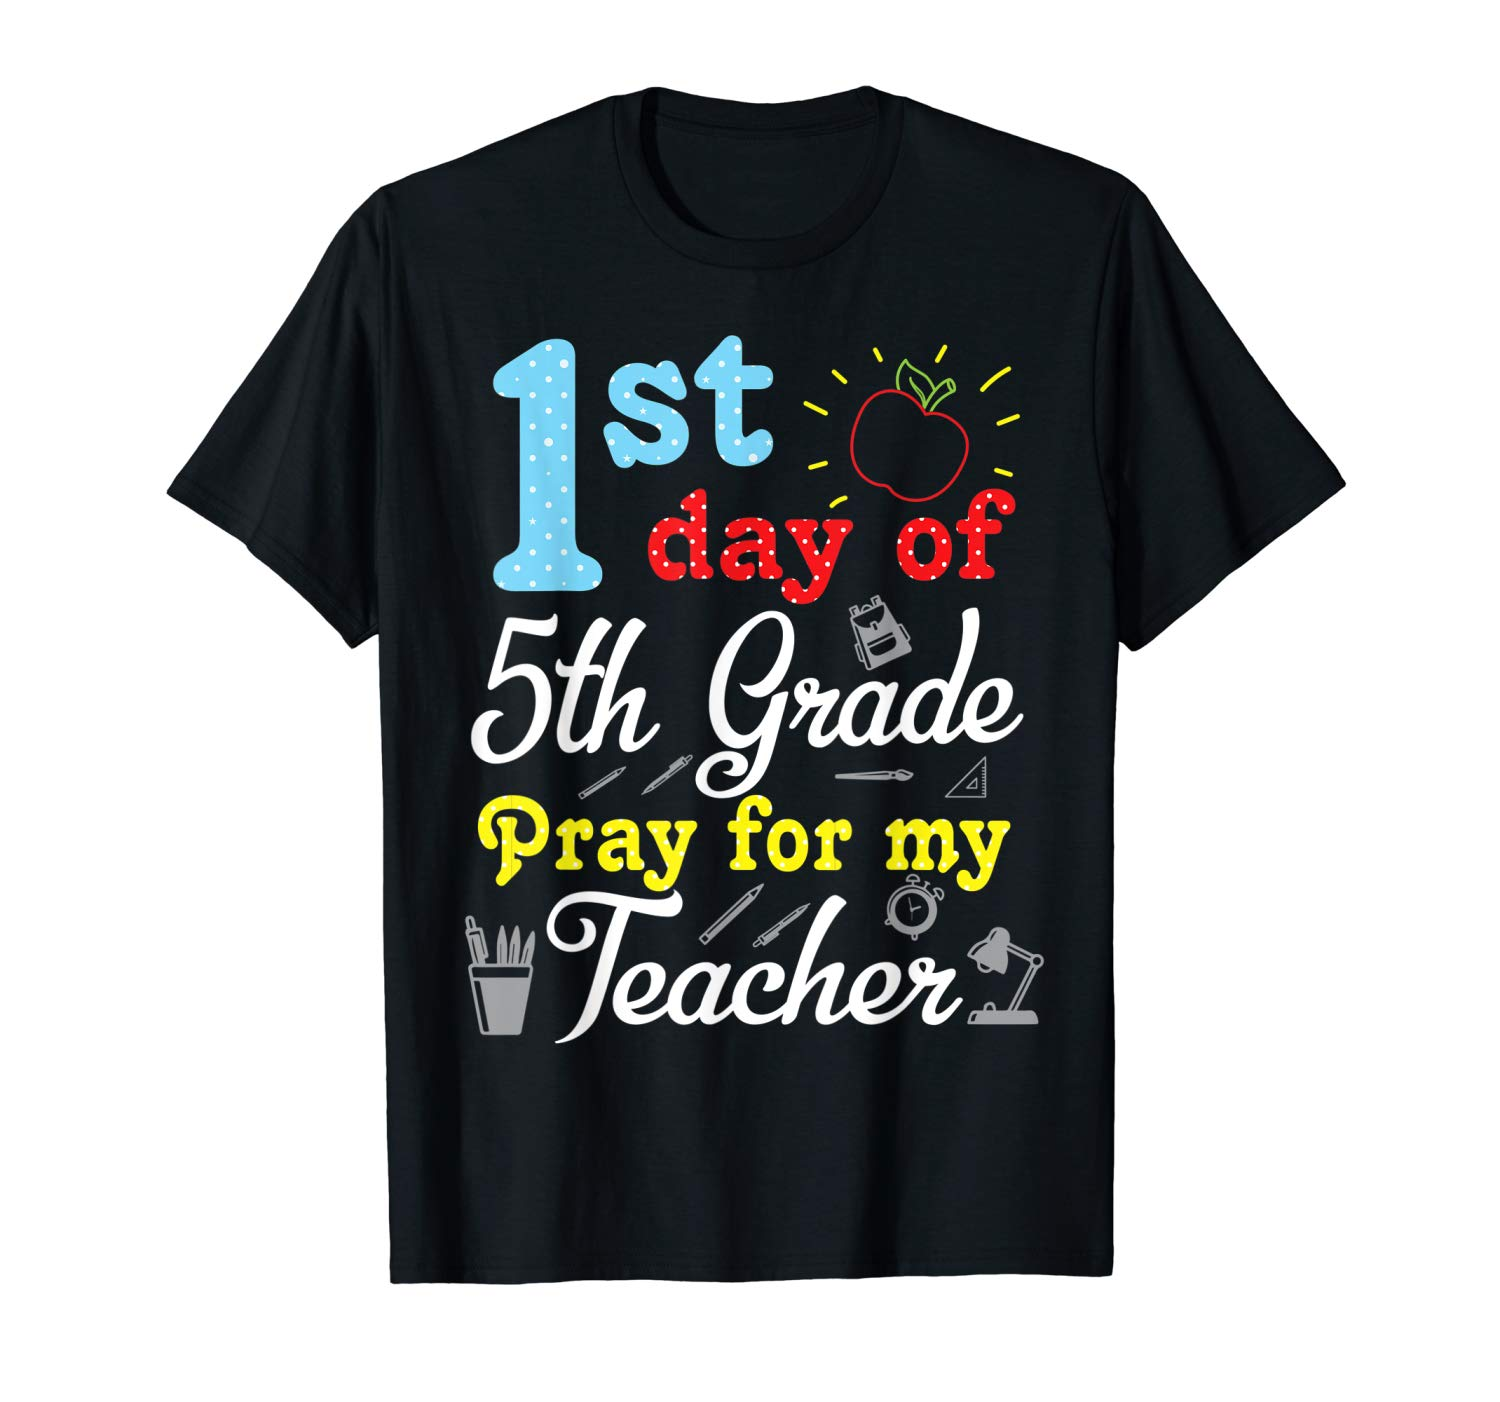 Student 1st Day Of 5th Grade Pray For My Tea Happy Shirt